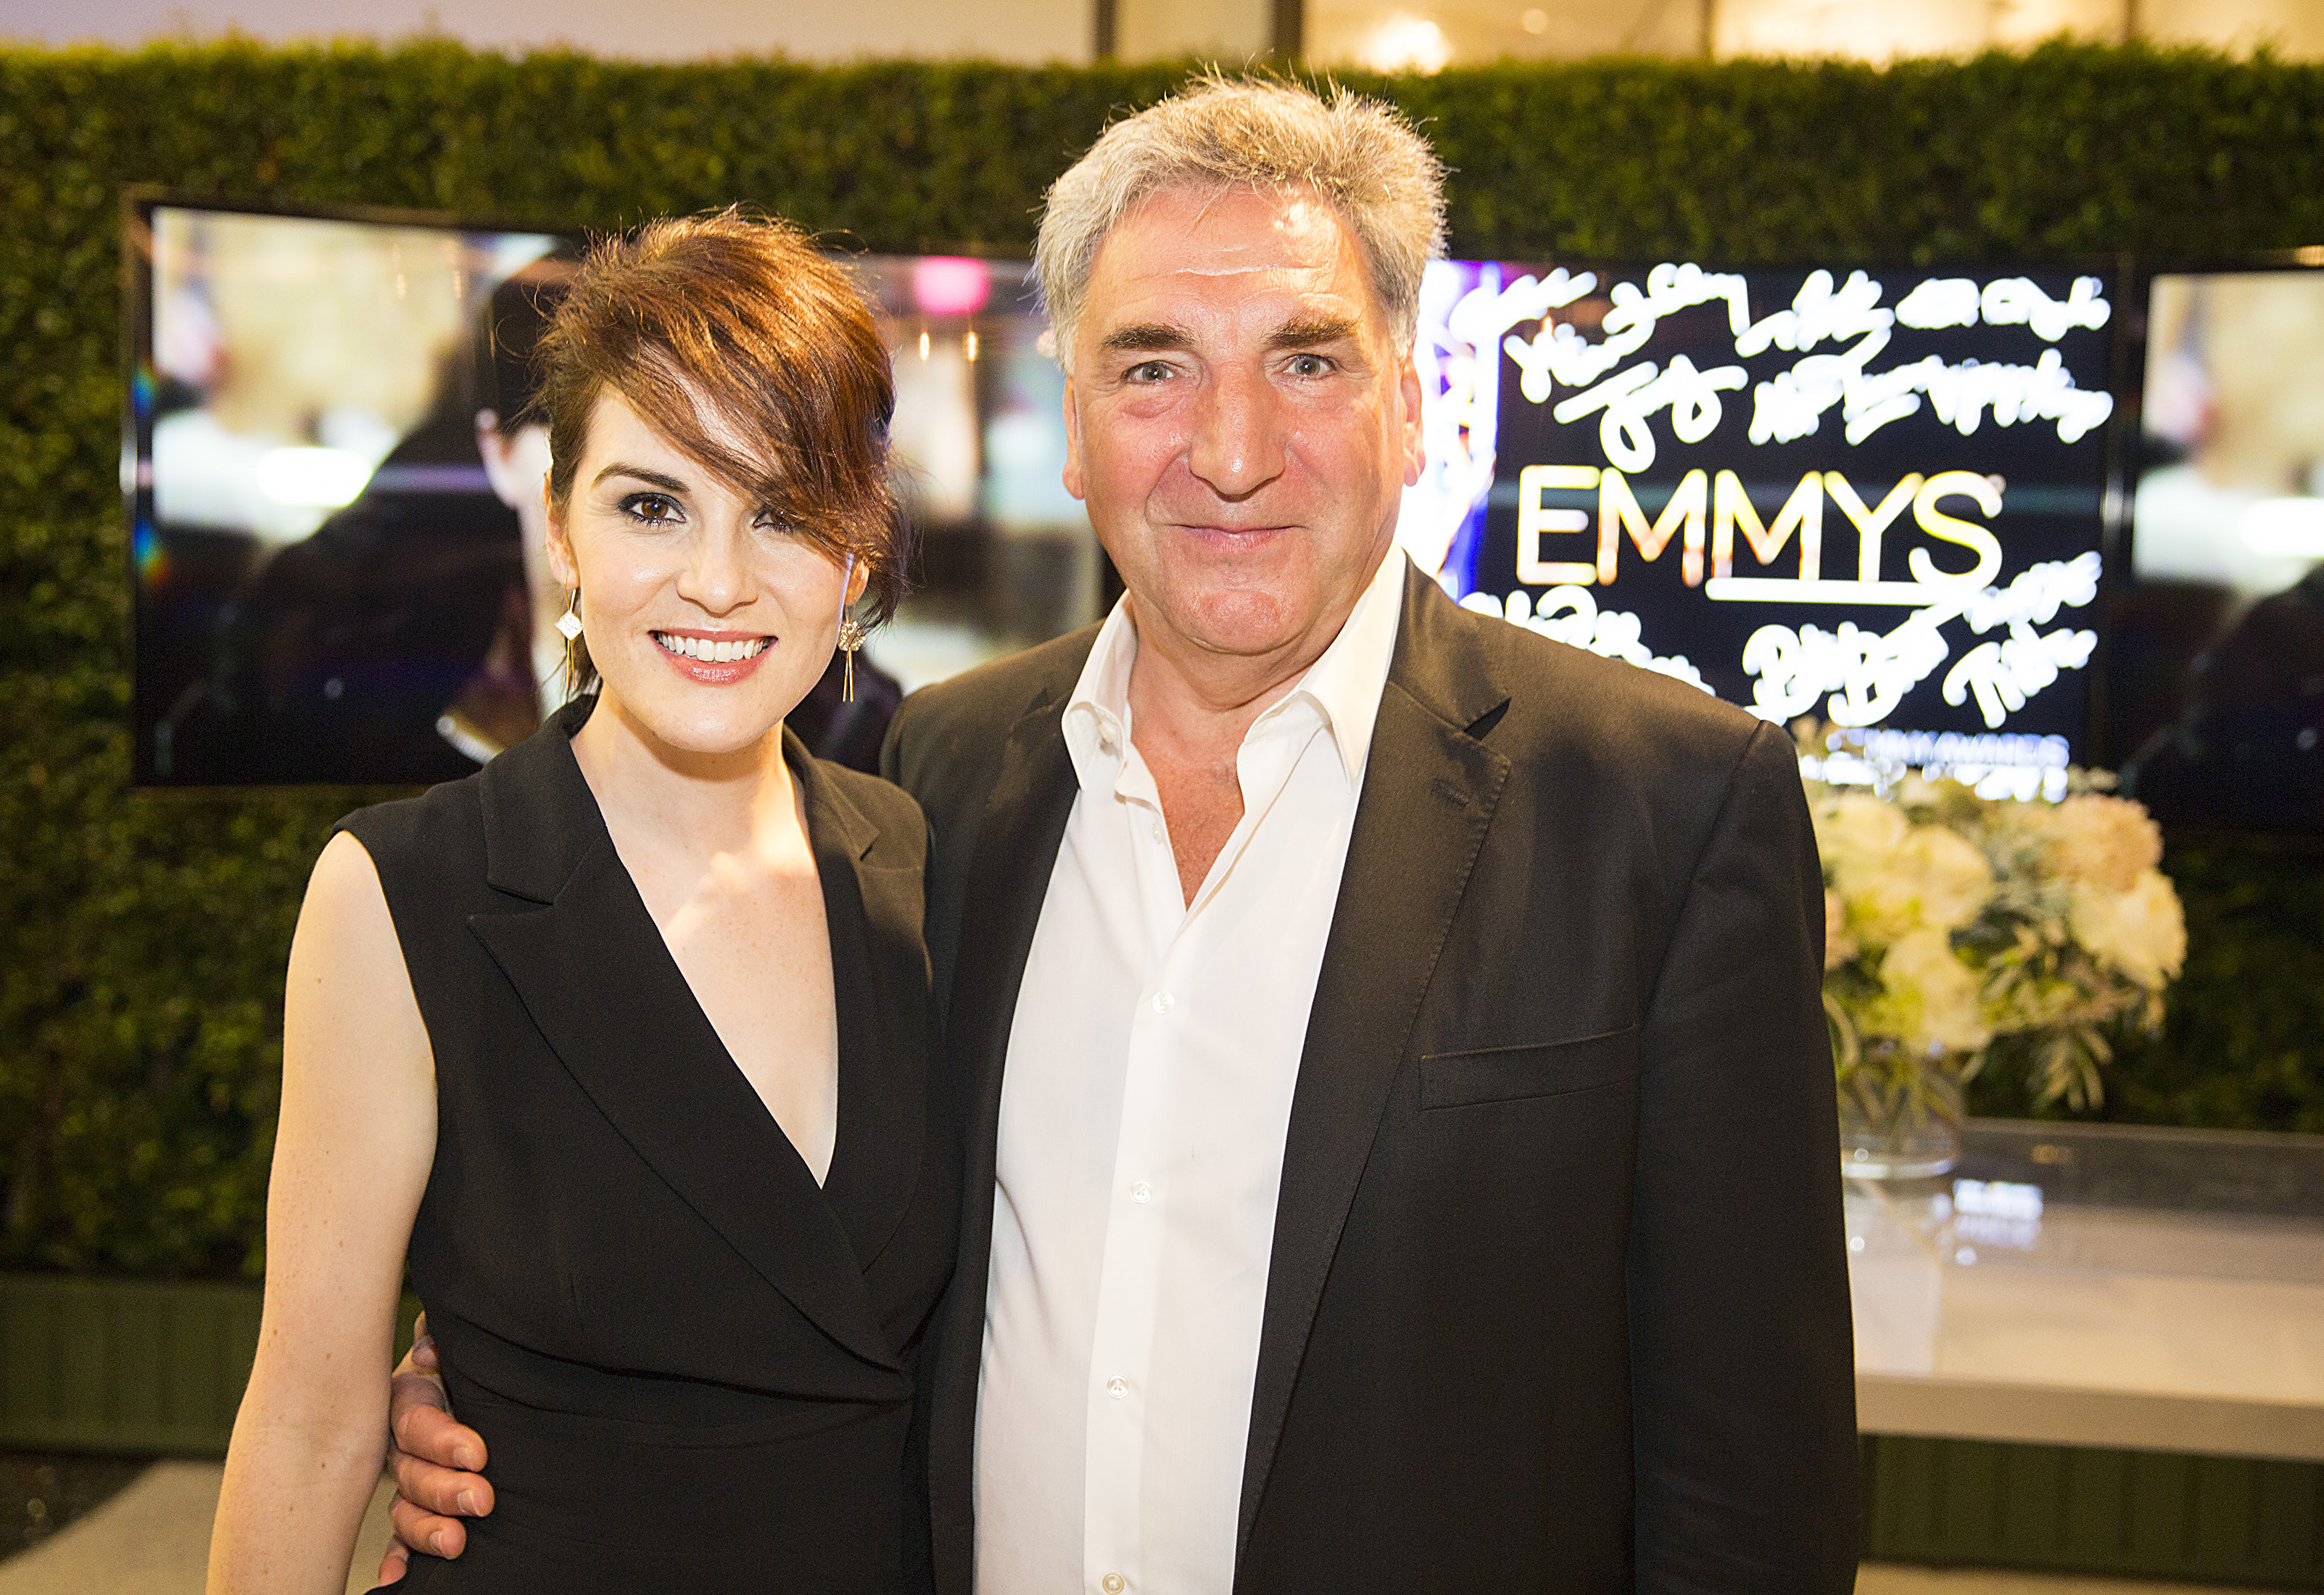 Samsung at the 66th Emmy Awards Performers Nominee Reception